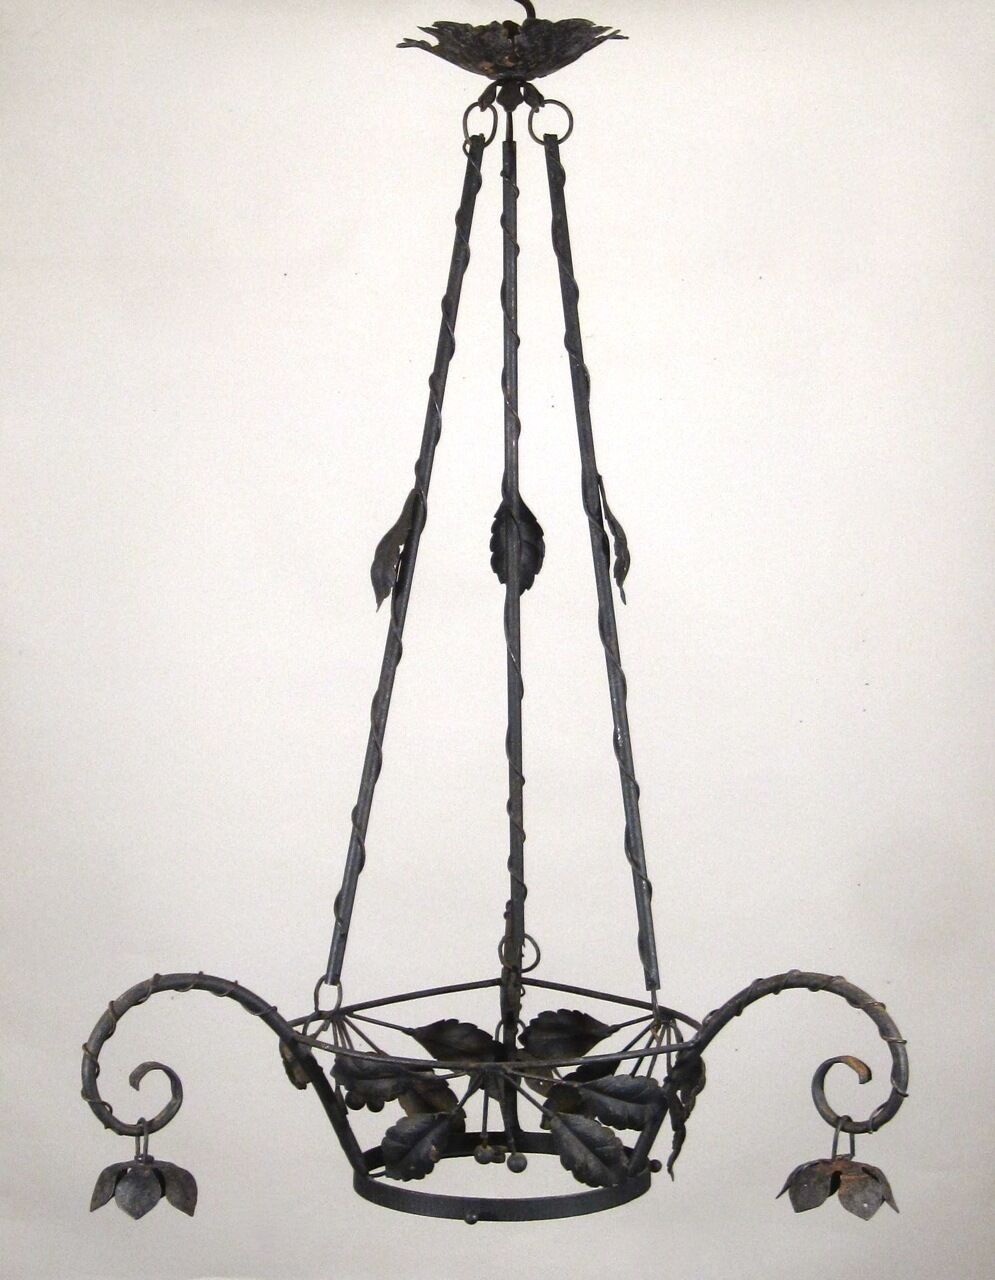 Antique French Art Nouveau Period Wrought Iron & Tole Chandelier Frame, Cherry